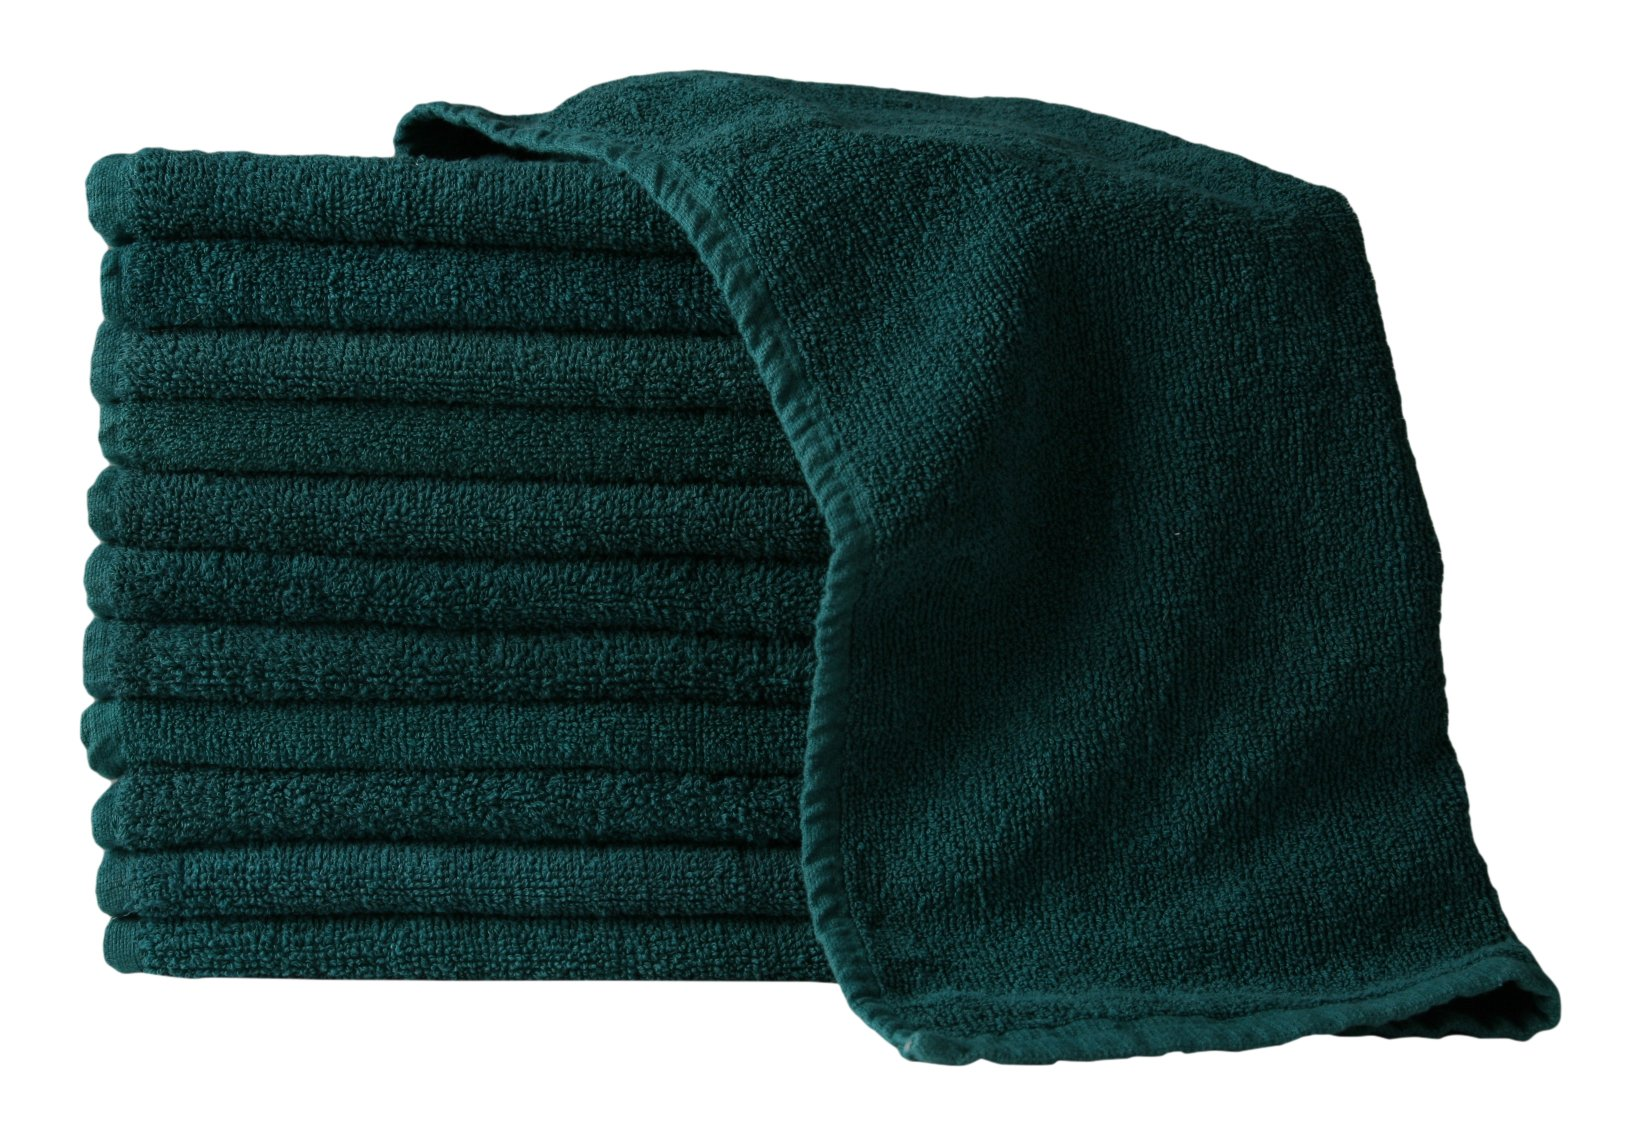 American Terry Mills 100% Cotton Salon Towels Gym Towels Hand Towel, 100% Ringspun-Cotton, Maximum Softness, Absorbency & Durability, Green, 144 Piece, 12 Dozen in a Pack